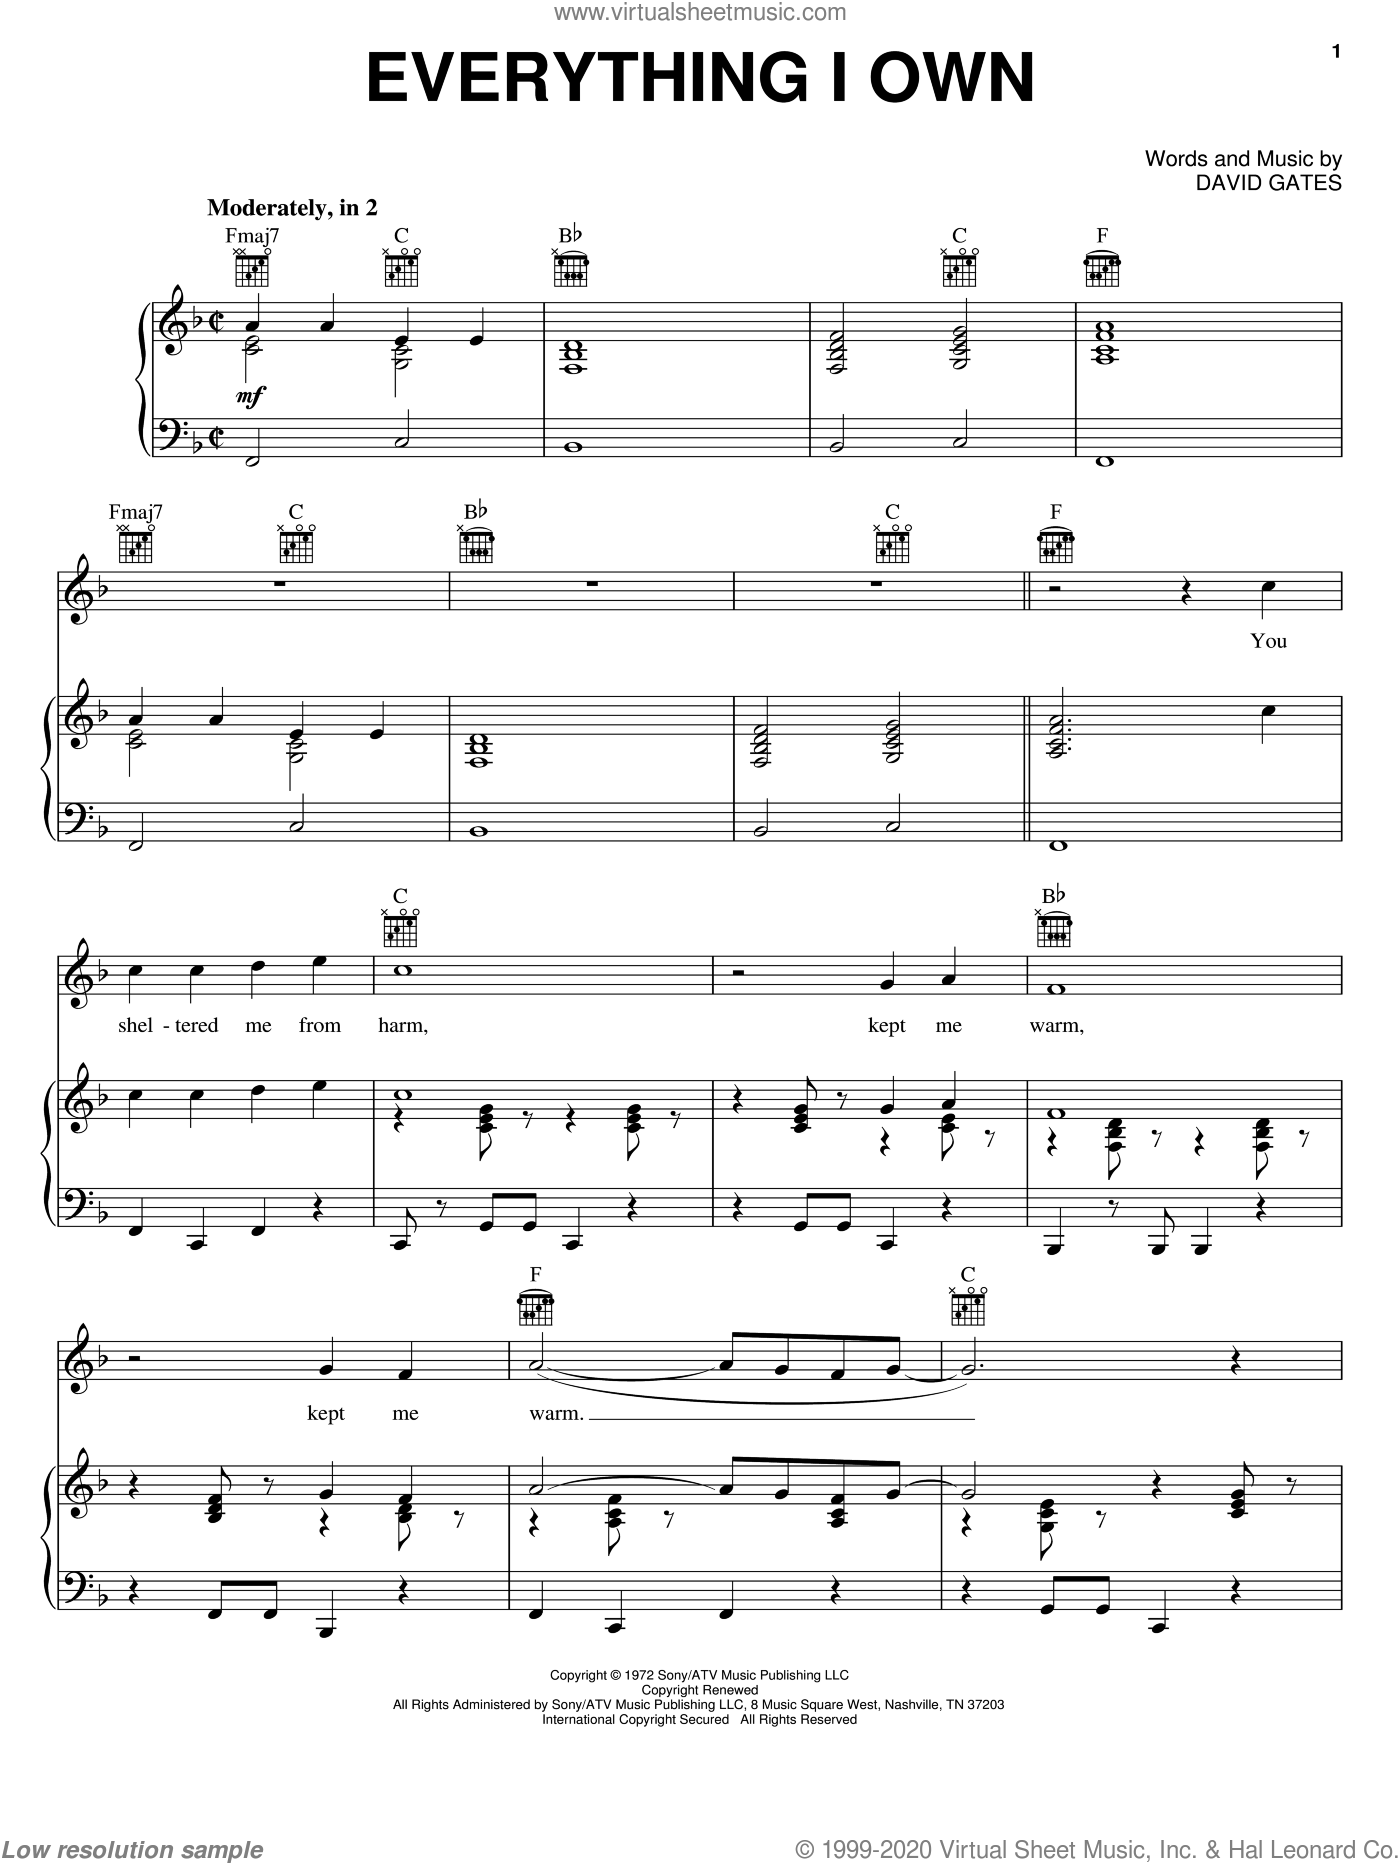 Everything I Own sheet music for voice, piano or guitar by Bread and David Gates. Score Image Preview.